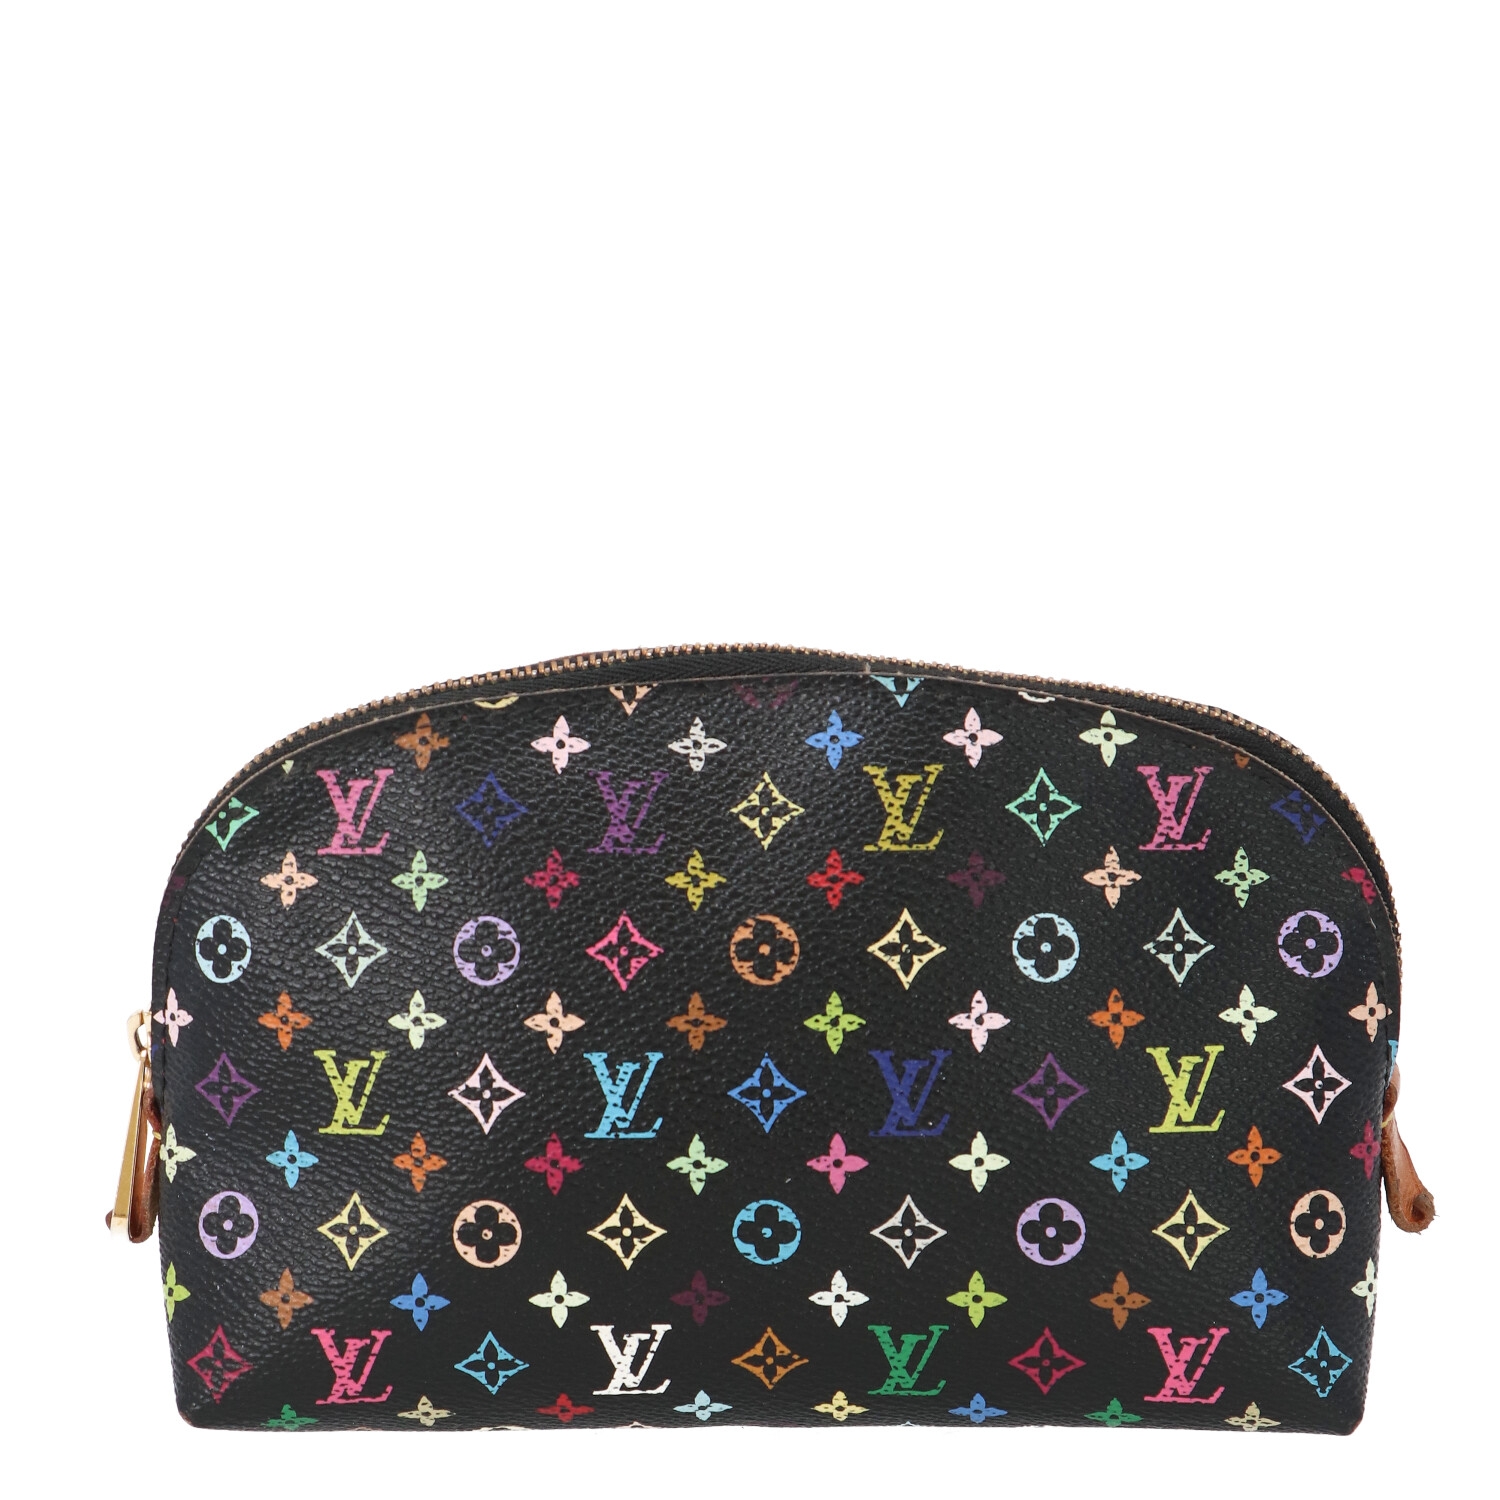 Louis Vuitton Black Multicolor Monogram Canvas Cosmetic Pouch